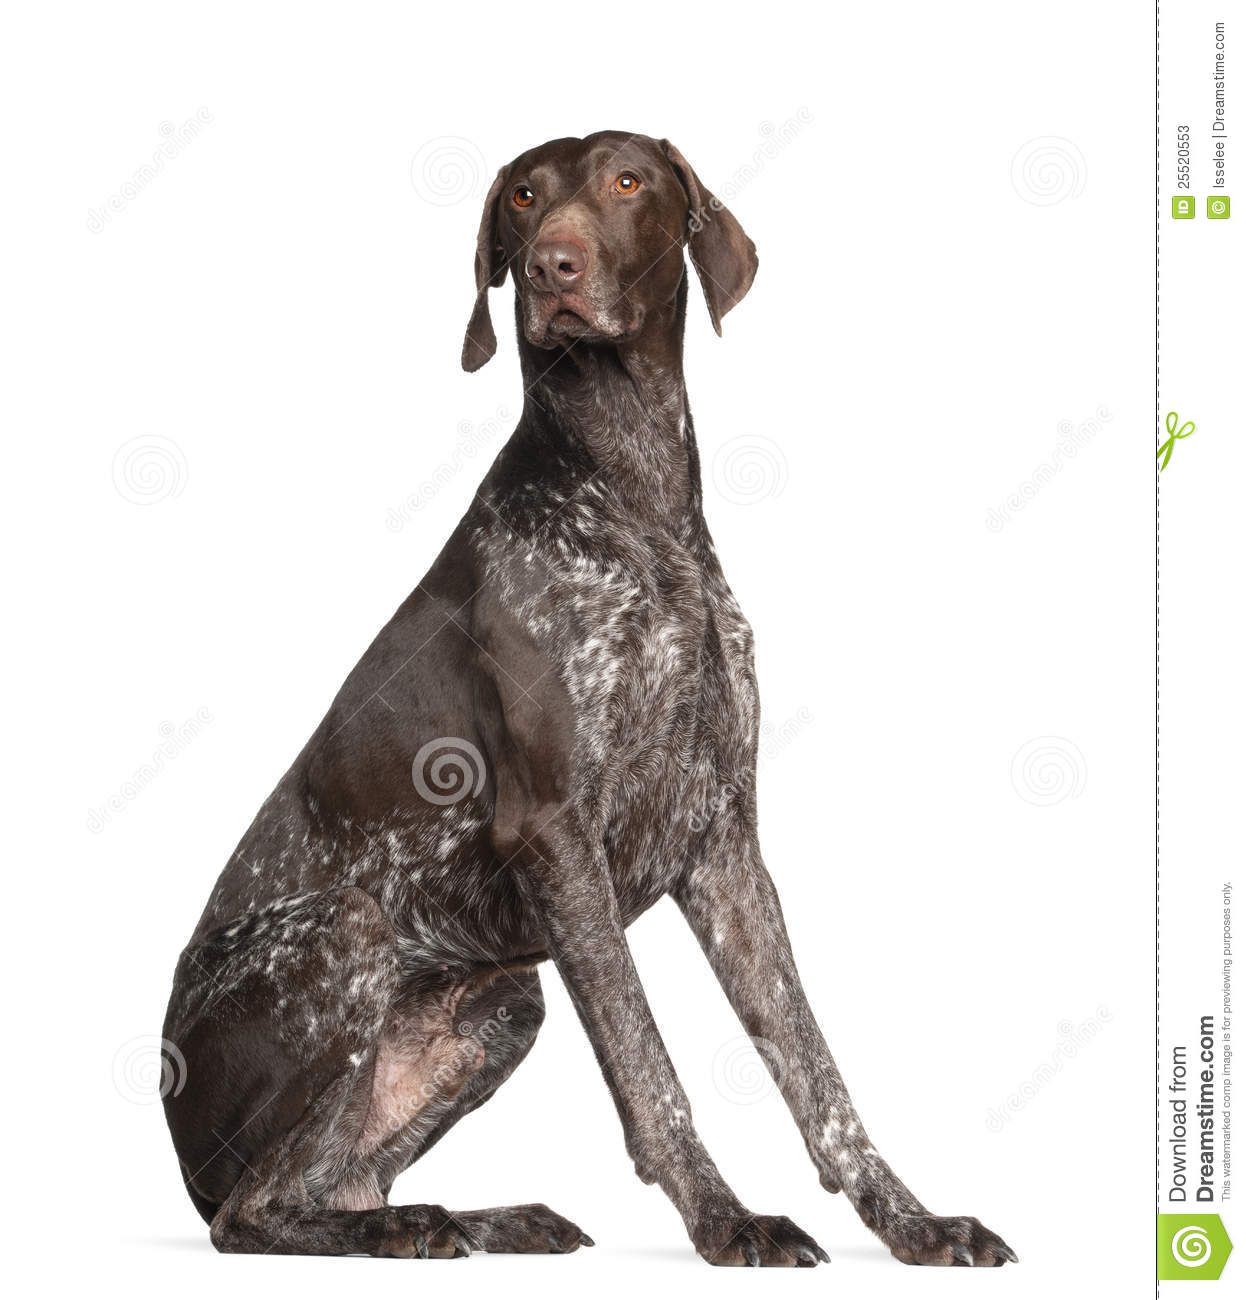 German Shorthaired Pointer, 4 years old, sitting